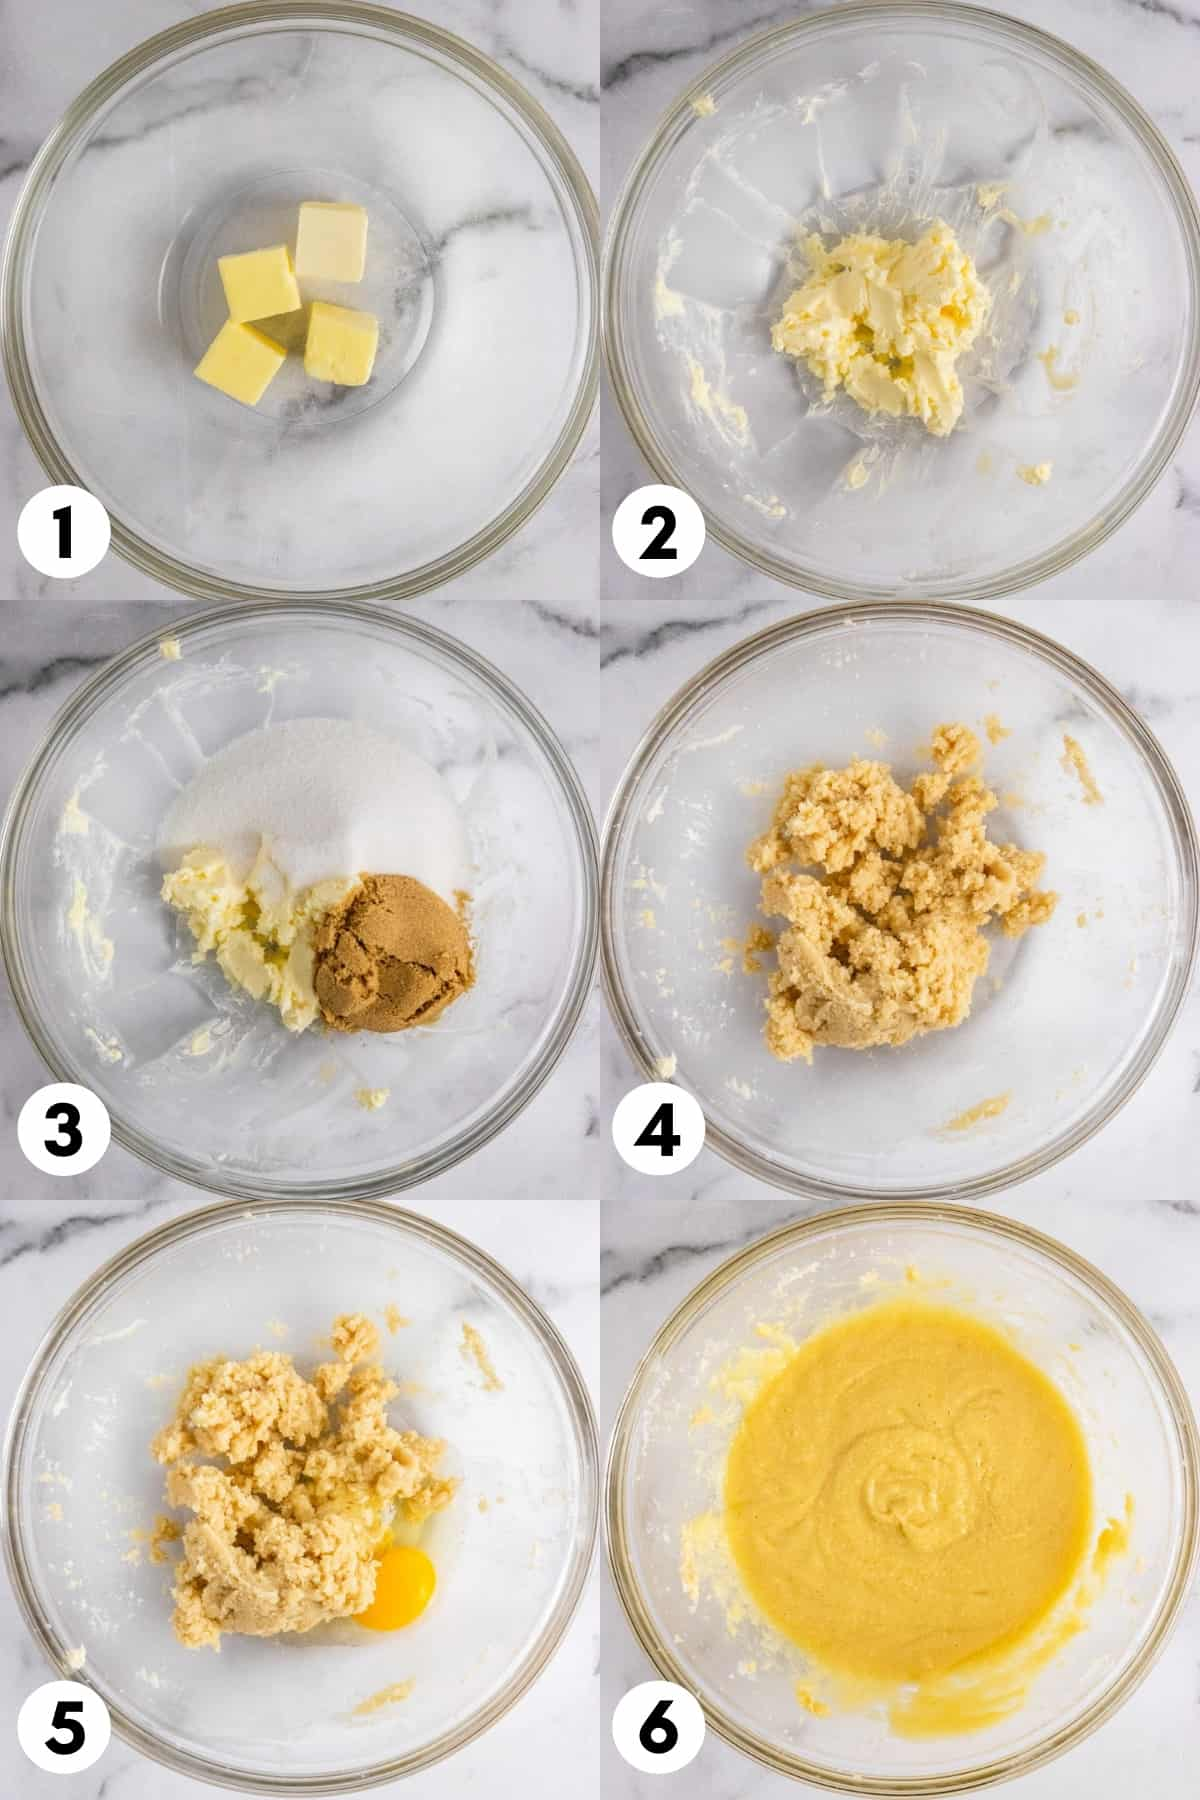 Butter, sugar, eggs and ingredients mixed in mixing bowl.